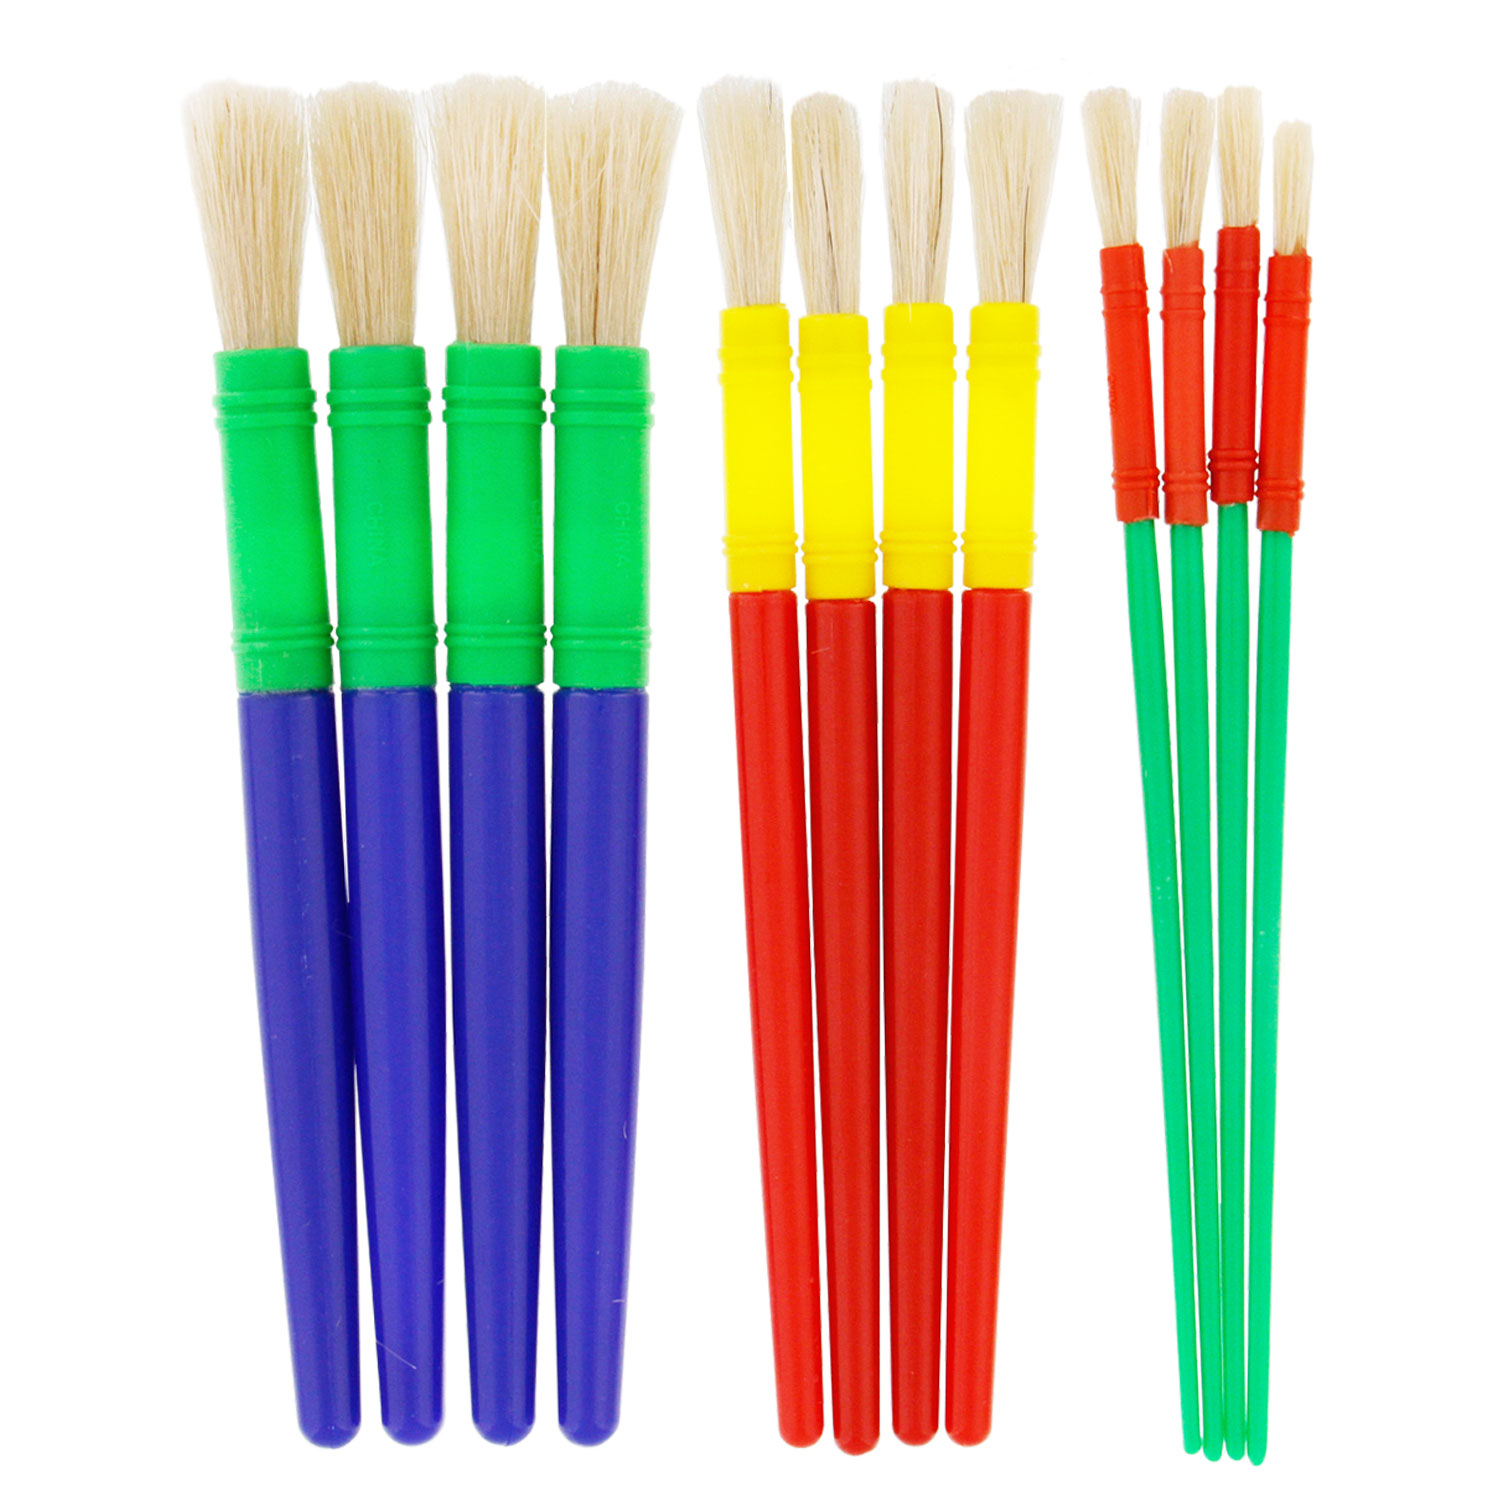 US Art Supply 12 Piece Round Children's Tempera Paint Brushes in 3 Sizes